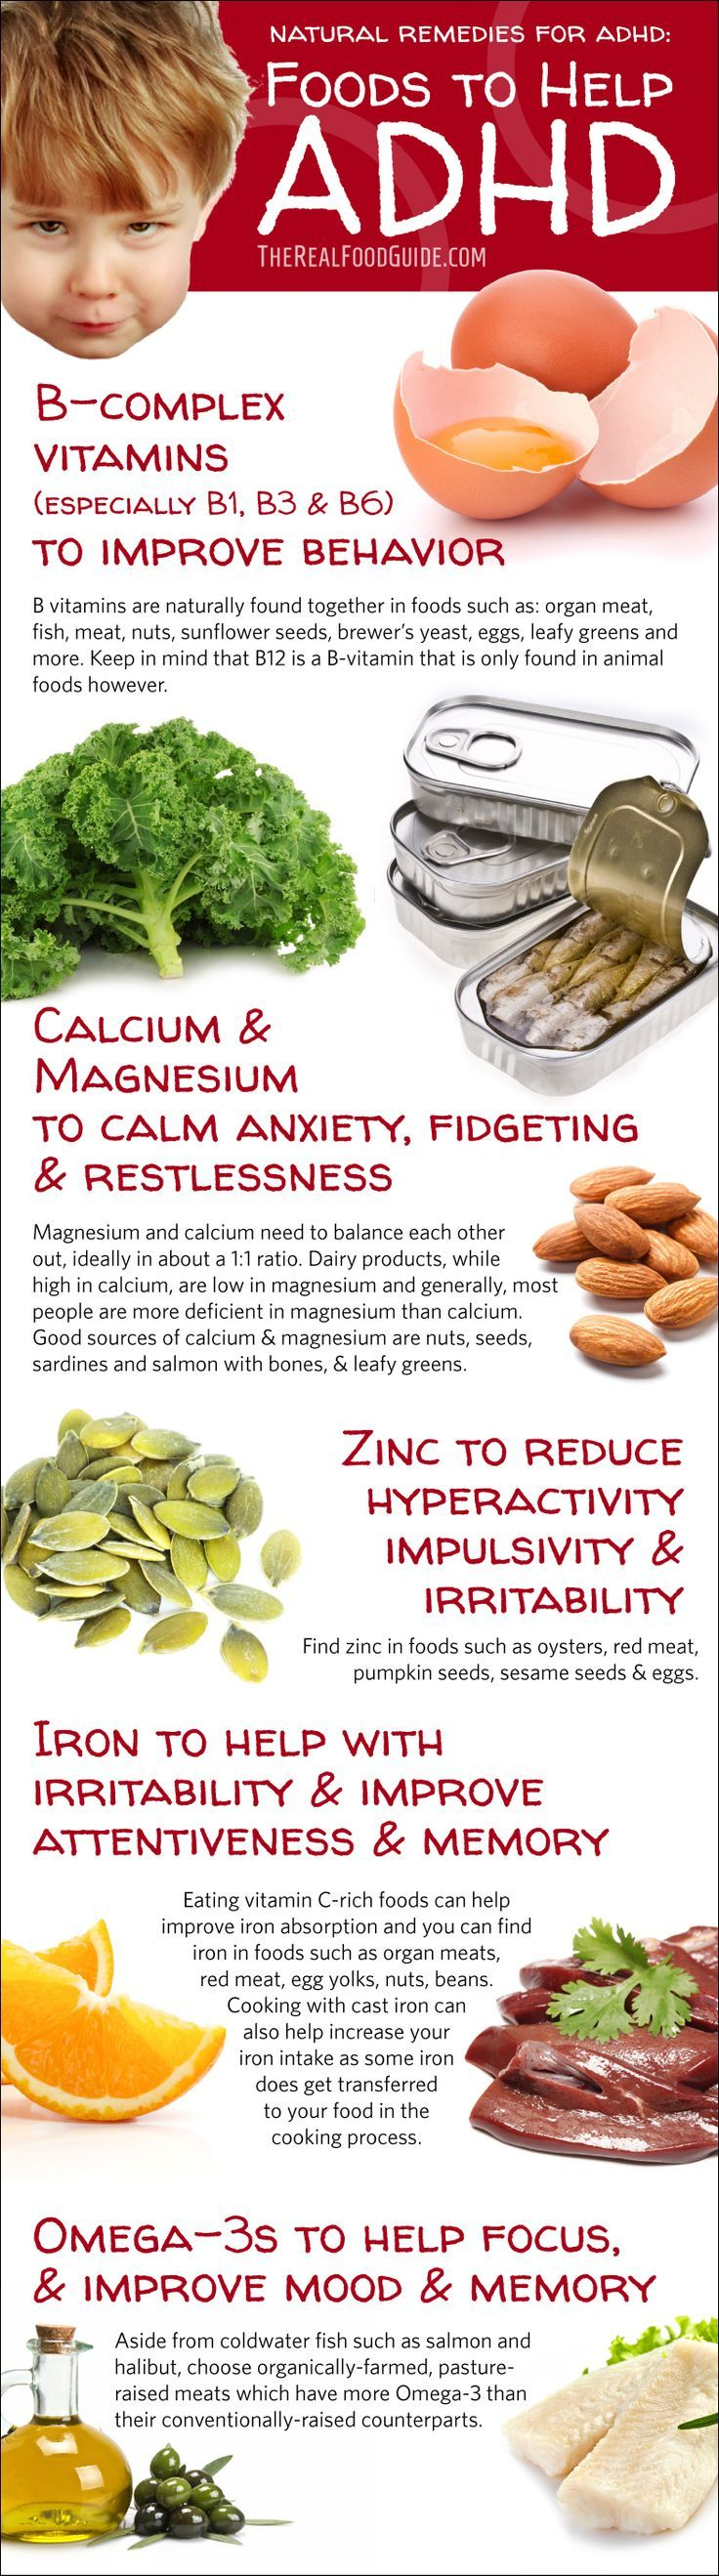 ADHD Home Remedies - How to Treat ADHD Naturally Natural Remedies for ADHD: Foods to Help ADHD infographic B-complex vitamins, calcium, magnesium, zinc, iron, omega-3s